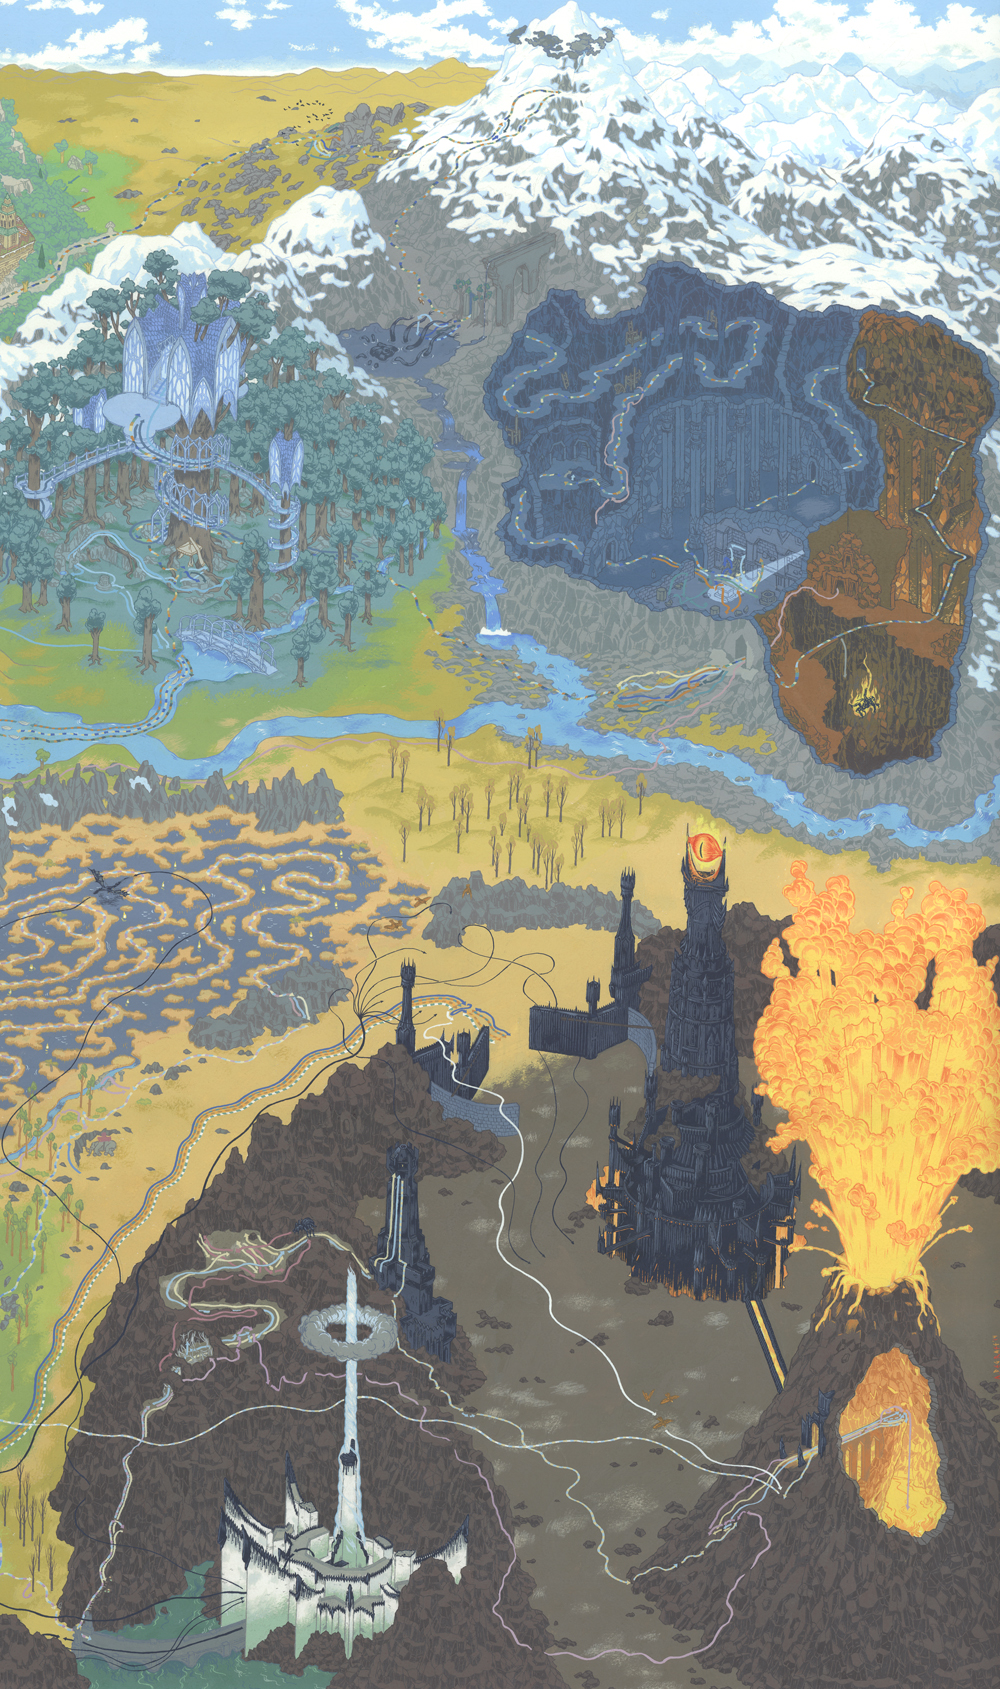 Andrew DeGraff – Cartography Art Show @Gallery 1988